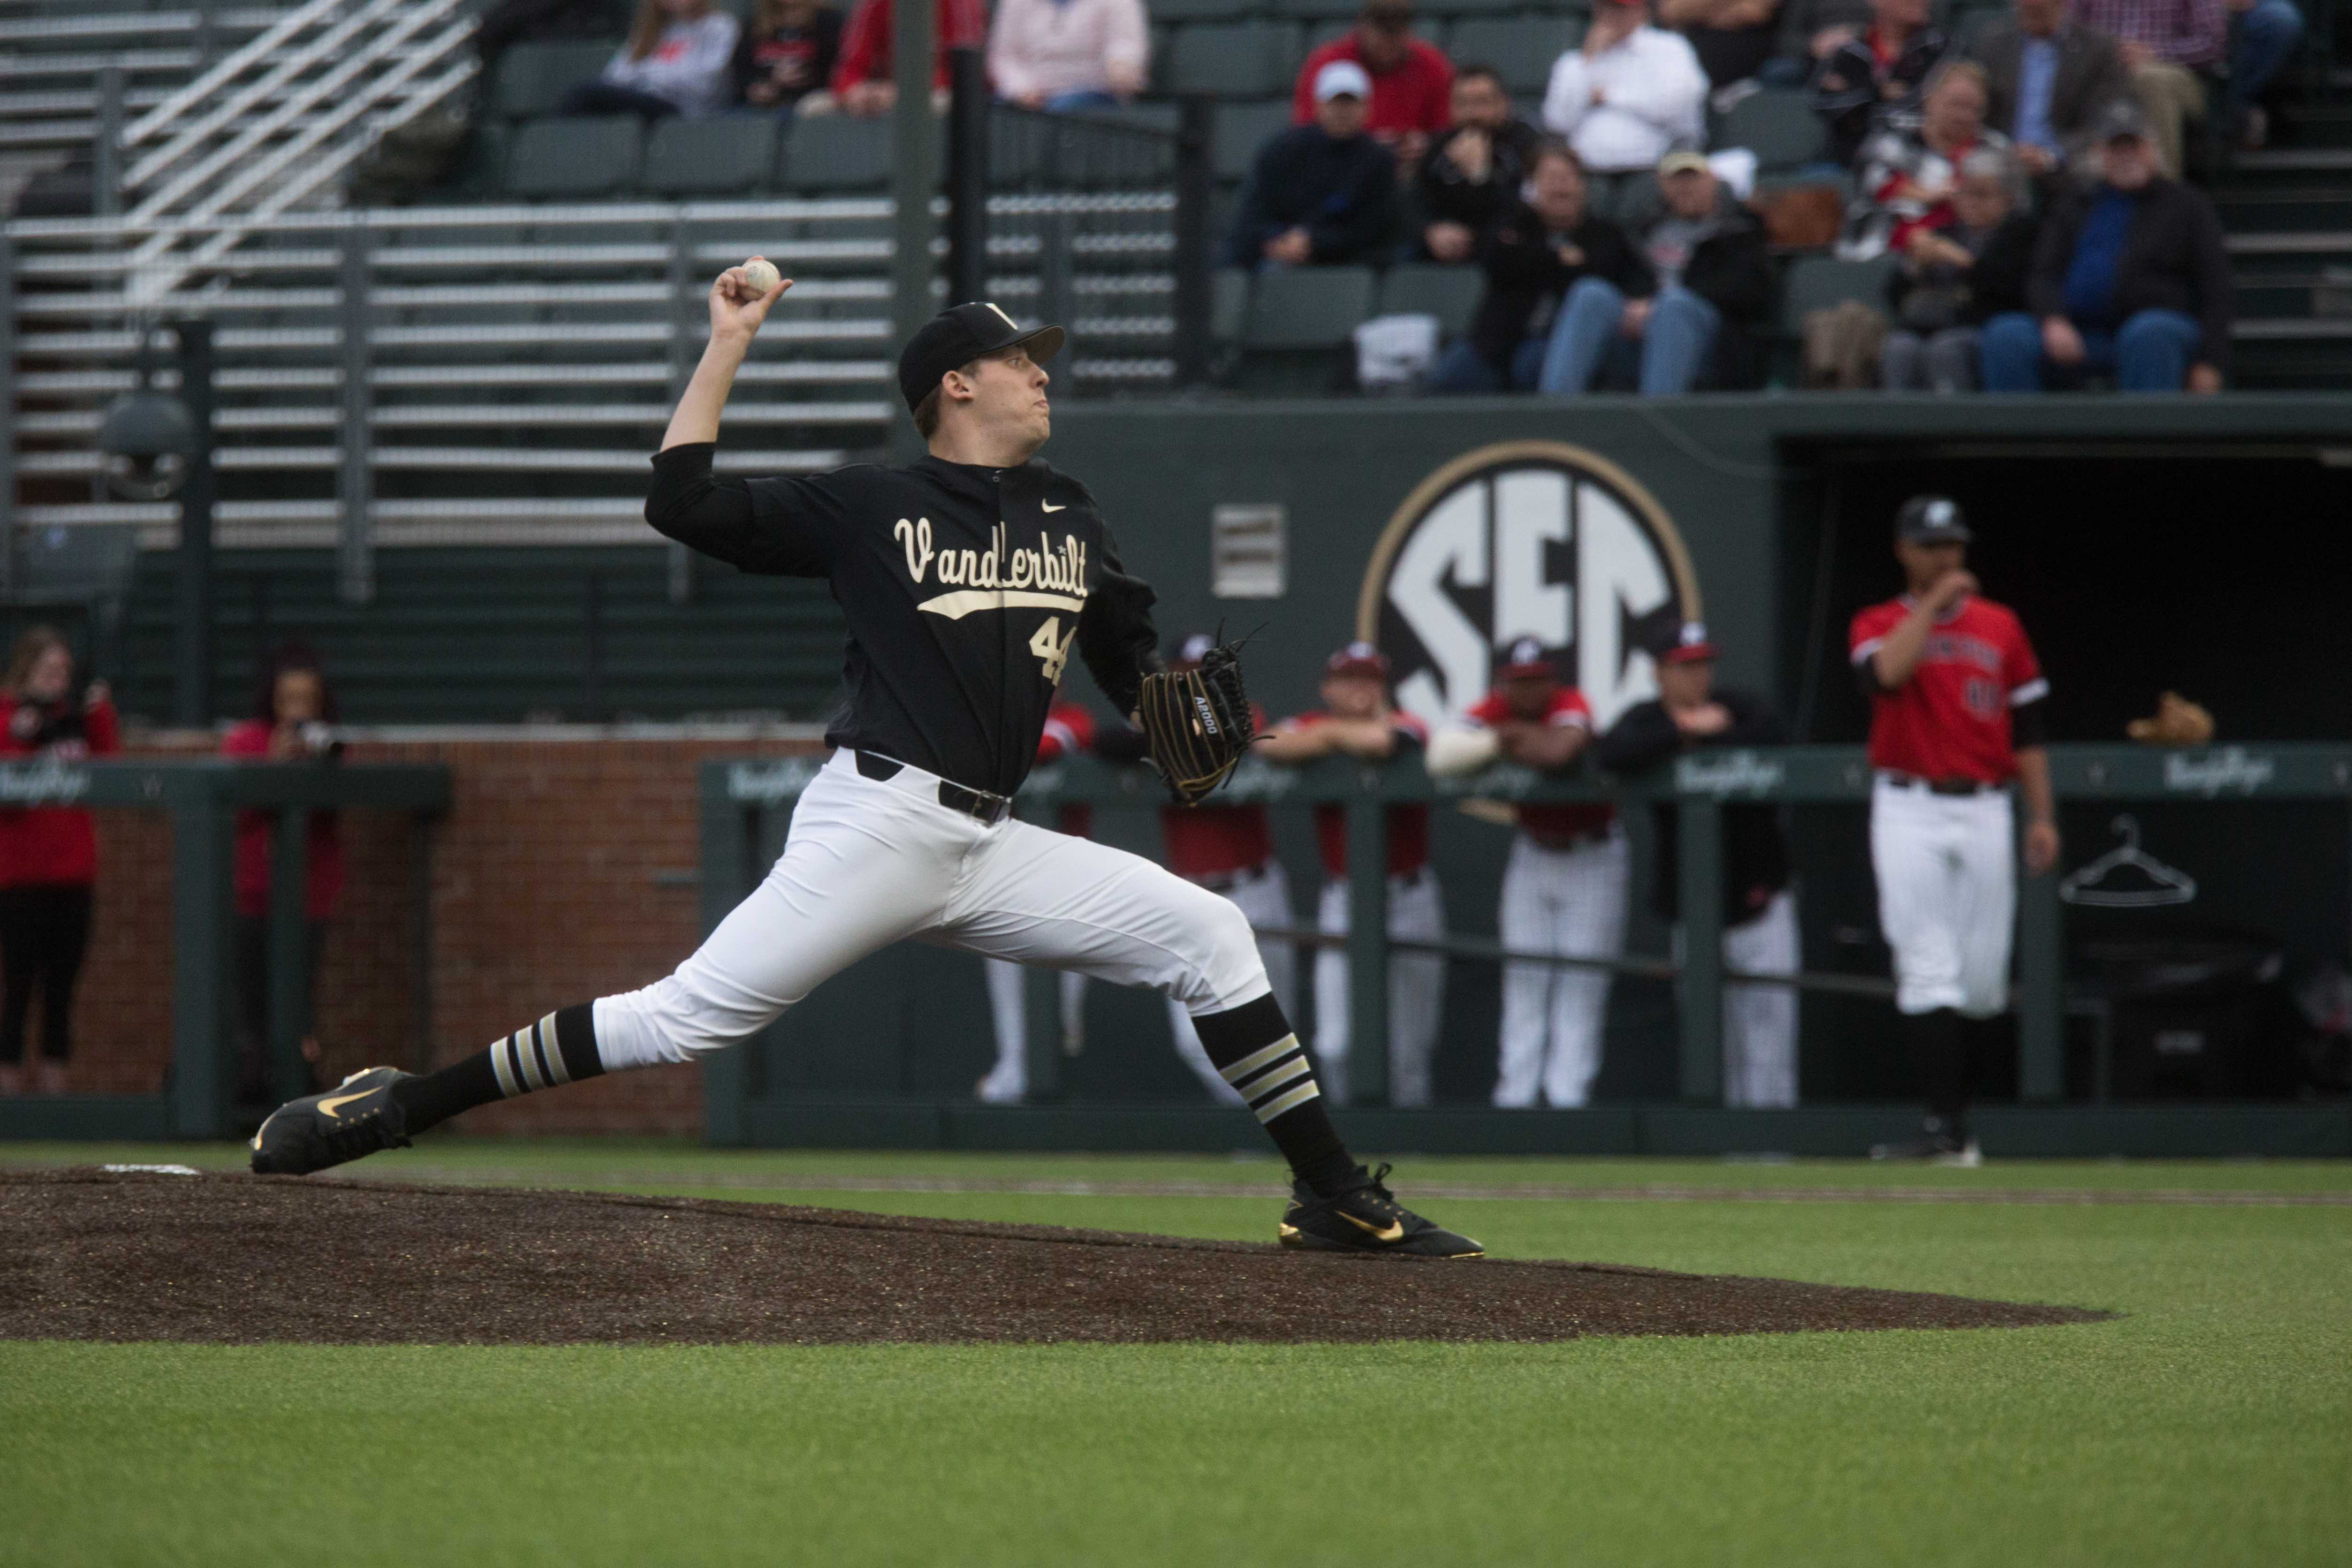 The Vanderbilt baseball team plays Austin Peay State University on Tuesday, February 27, 2018. The Vandy Boys were victorious. (Photo by Claire Barnett)